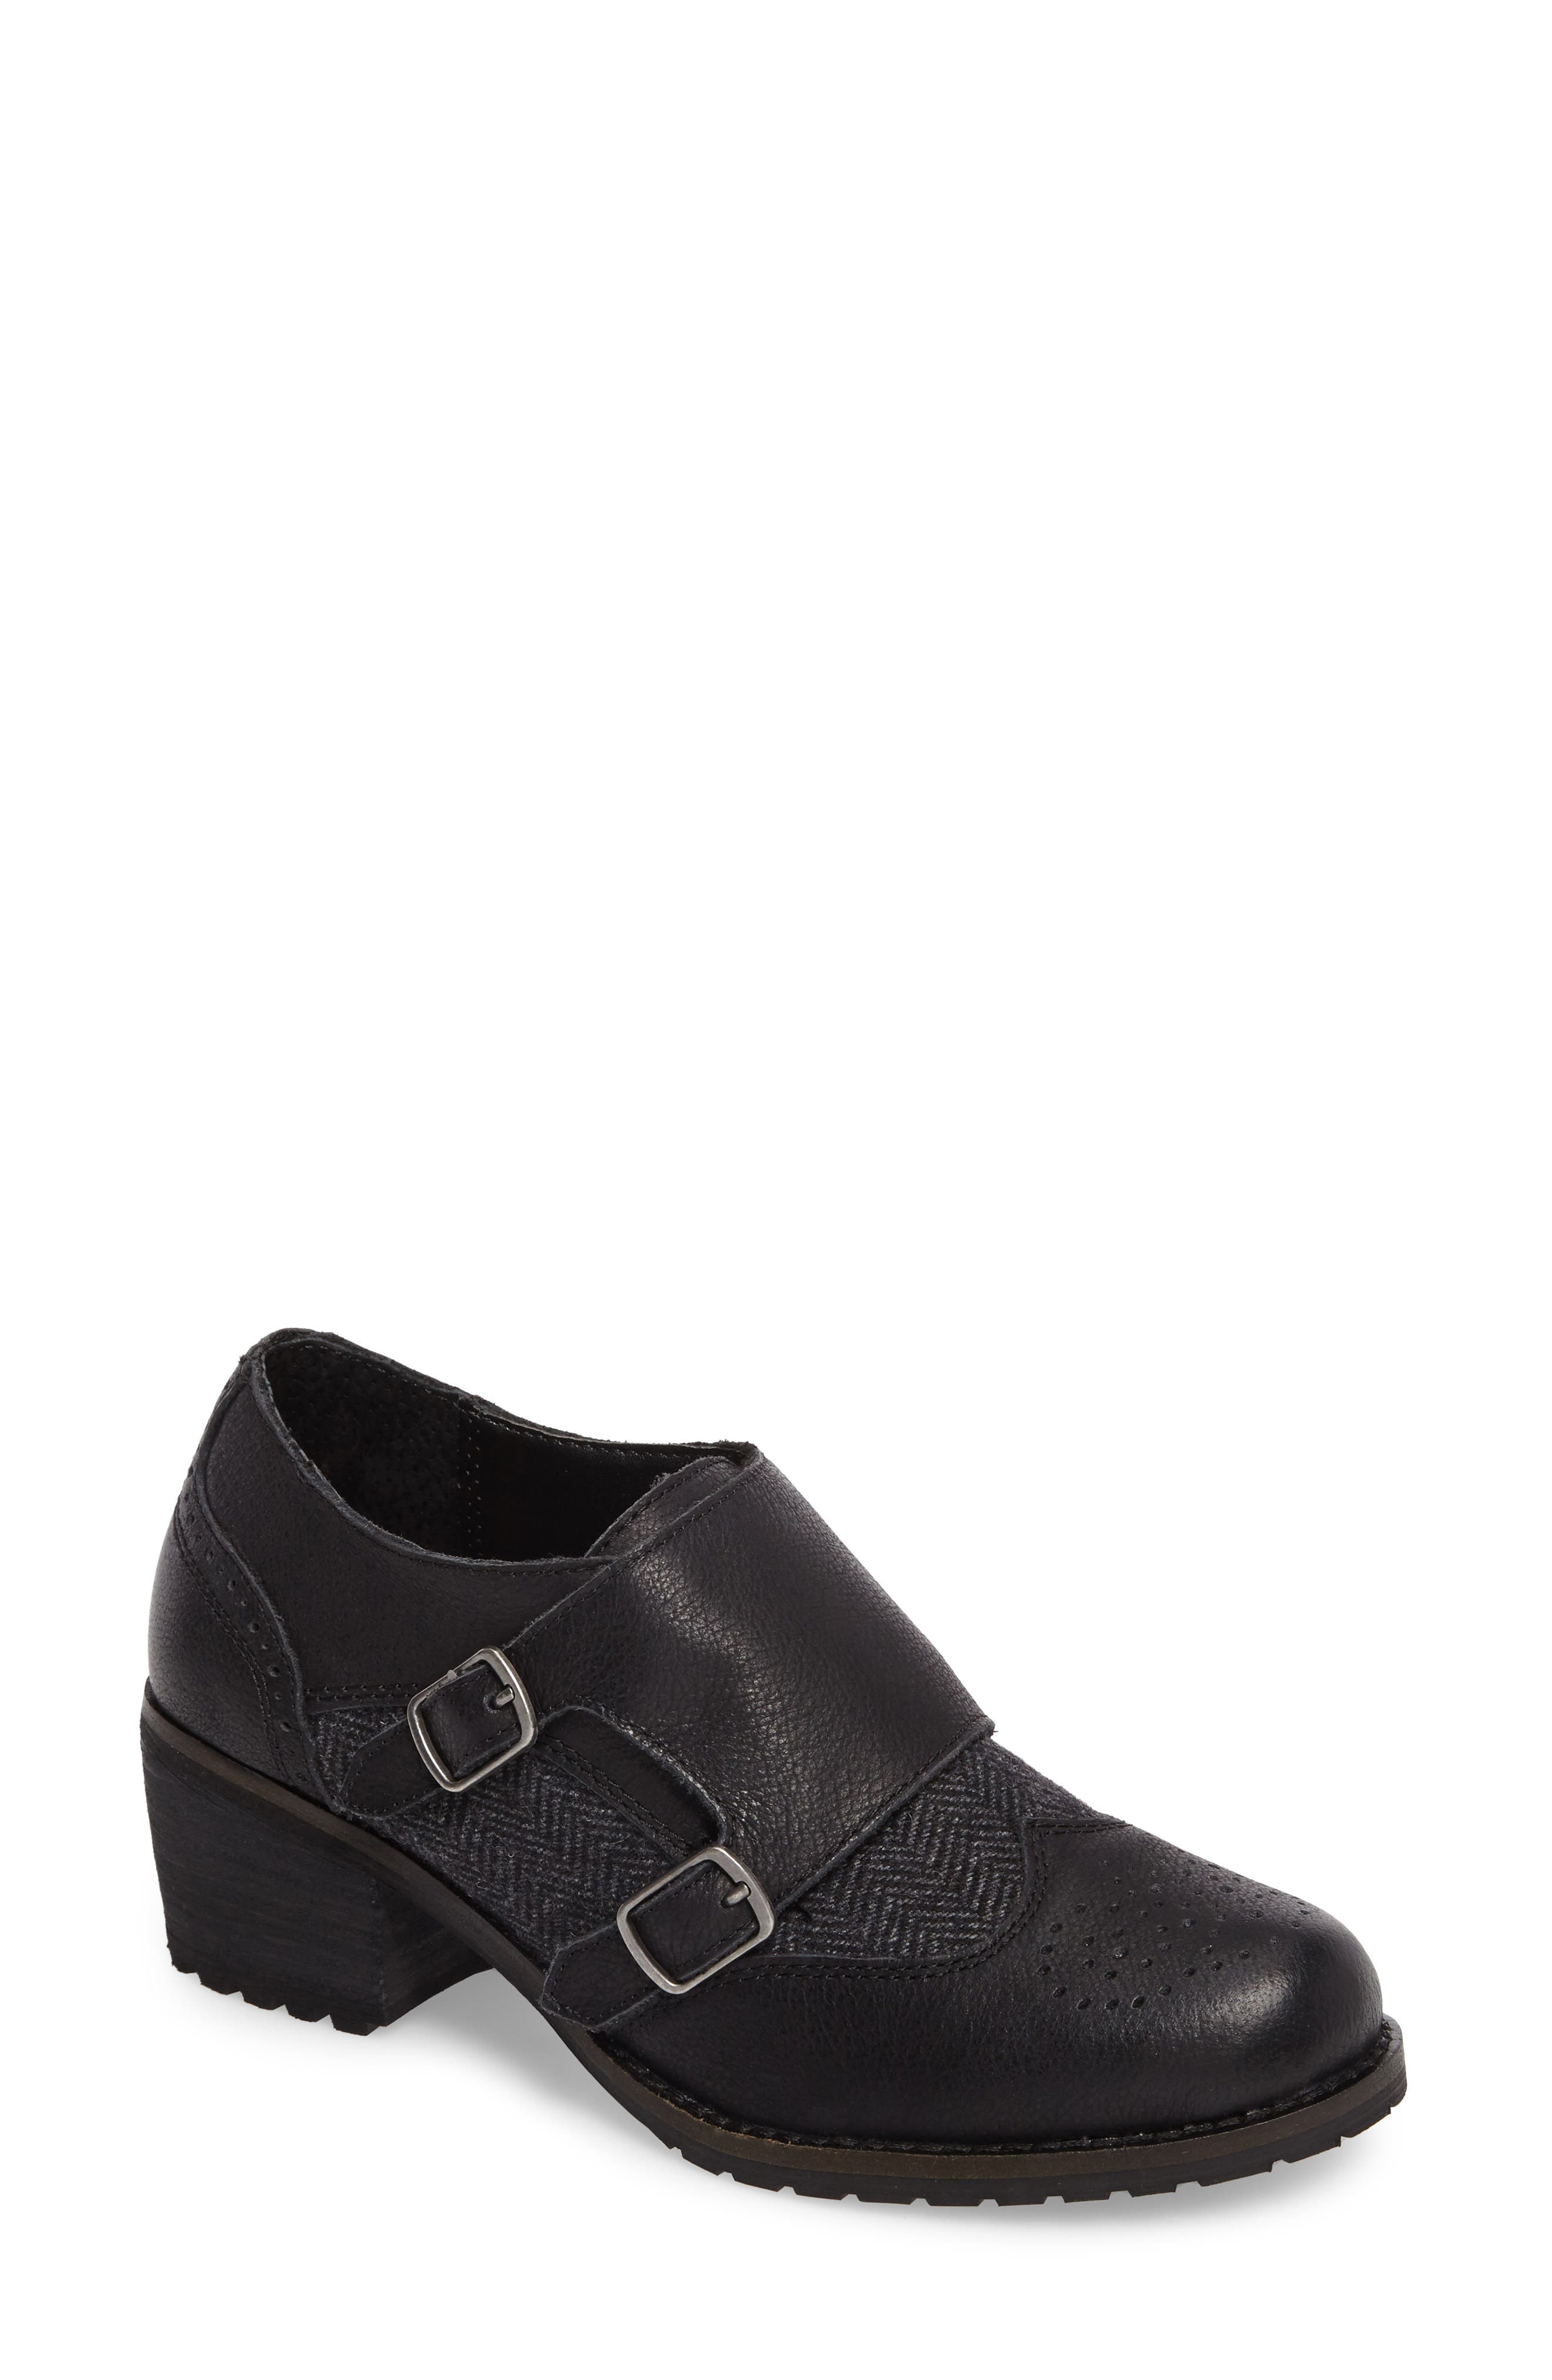 AETREX Dina Double Monk Strap Ankle Boot, Main, color, 001